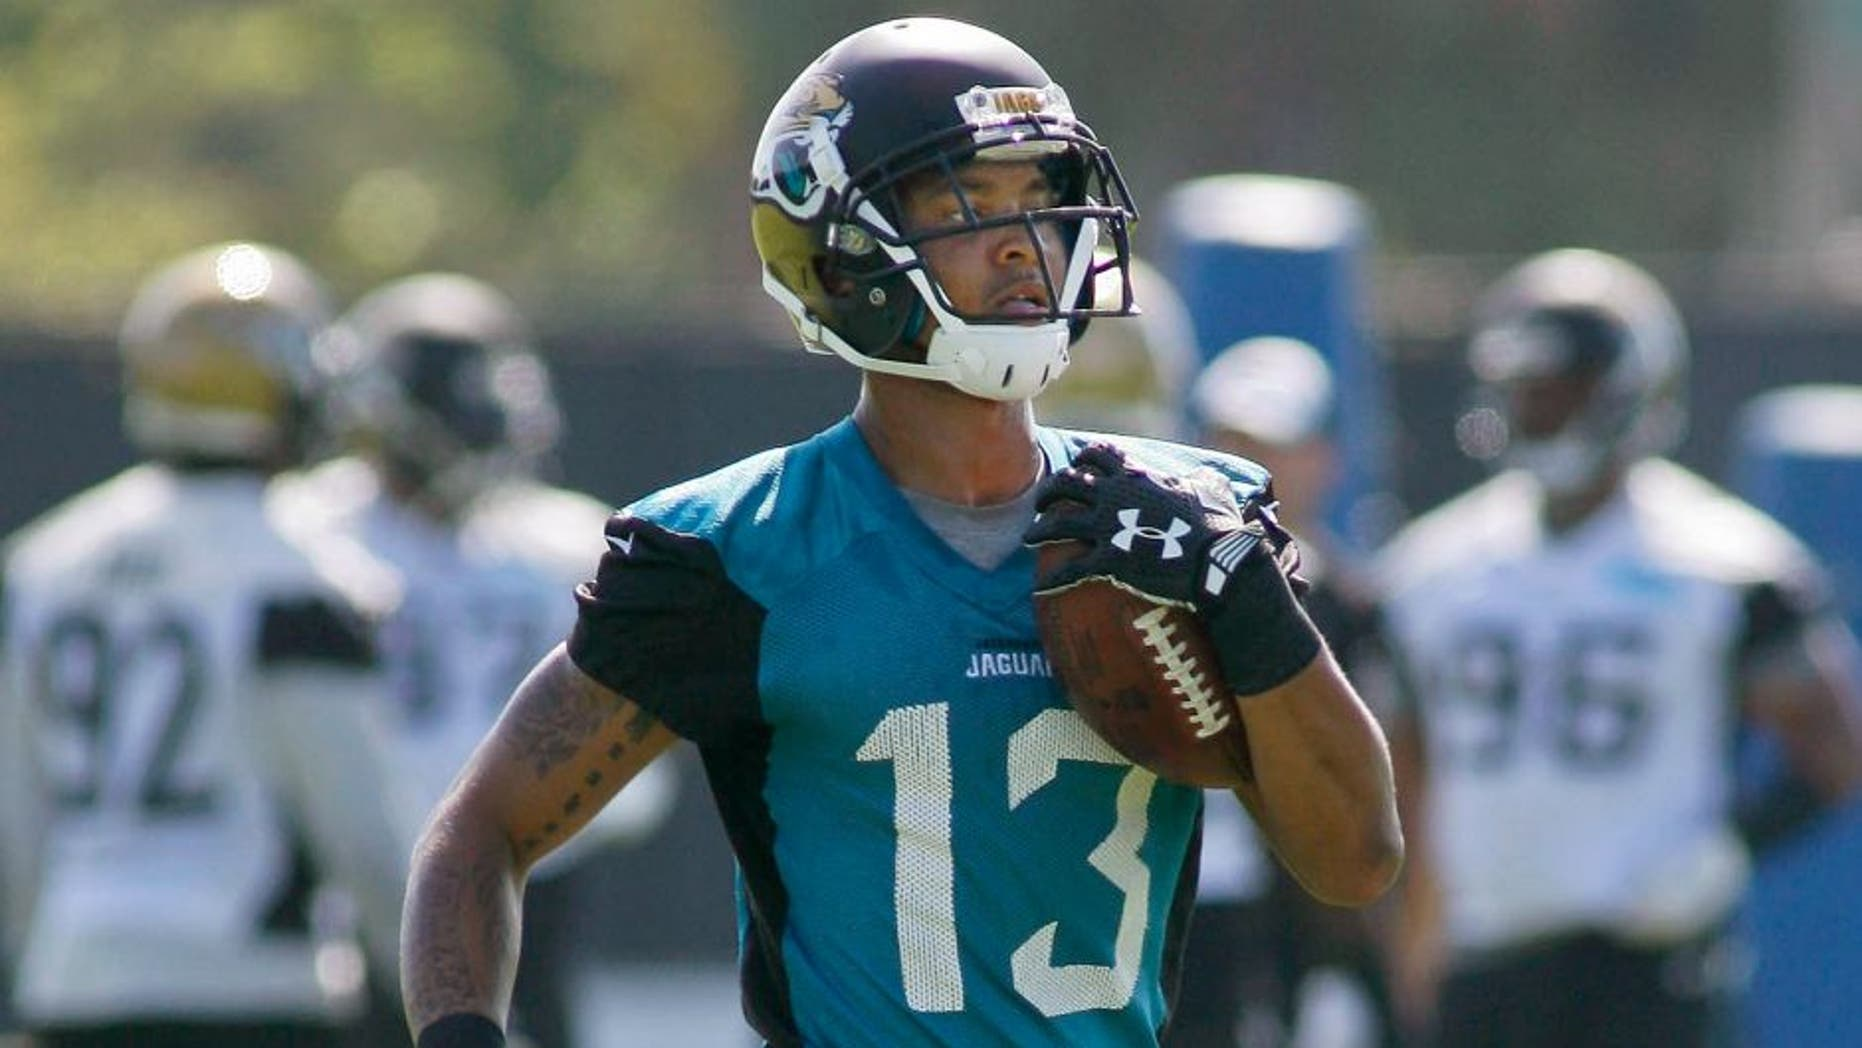 Jun 16, 2015; Jacksonville, FL, USA; Jacksonville Jaguars wide receiver Rashad Greene (13) returns a punt during minicamp at the Florida Blue Health and Wellness Practice Fields. Mandatory Credit: Phil Sears-USA TODAY Sports